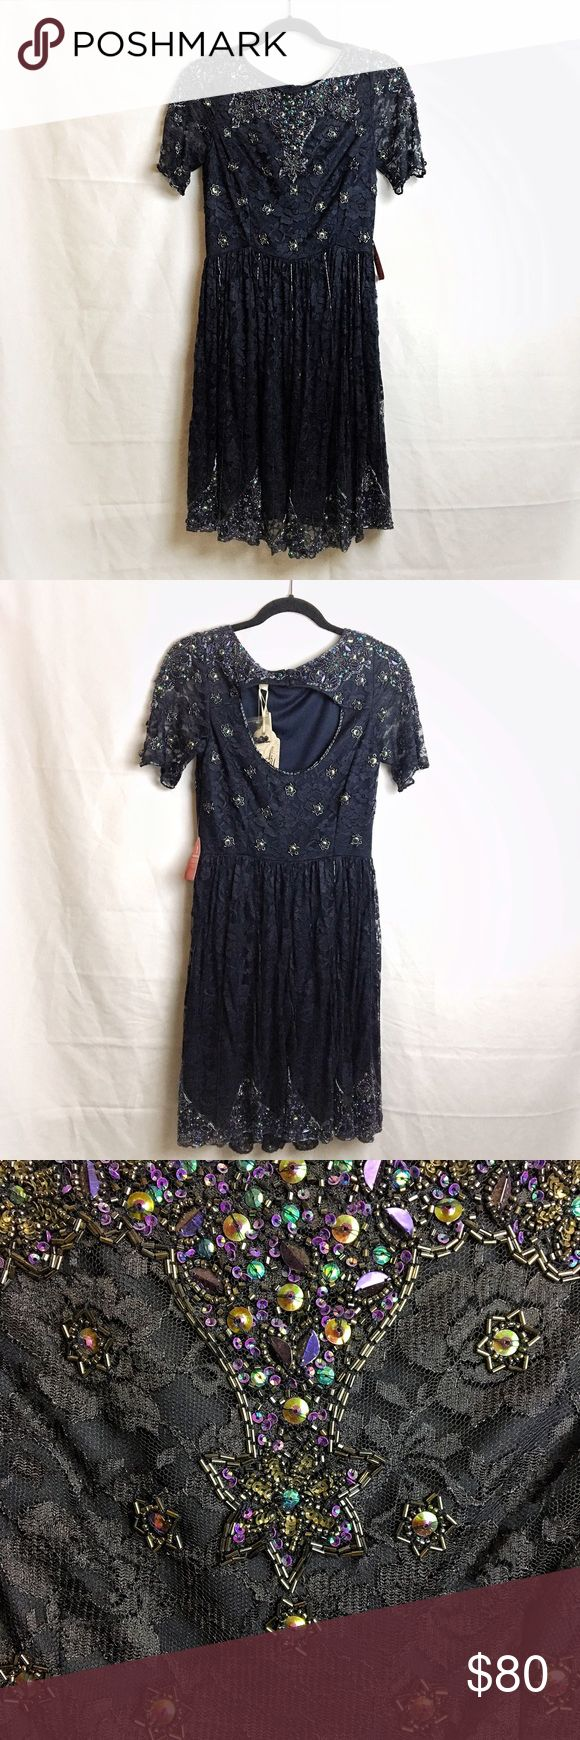 Frock and Frill Embellished Navy Dress SOOOOO GORGEOUS AHHH.  Navy color with beautiful embellishments.  NEW WITH TAGS. Size UK 8; US 4.  From a pet and smoke free home 💕 Frock and Frill Dresses